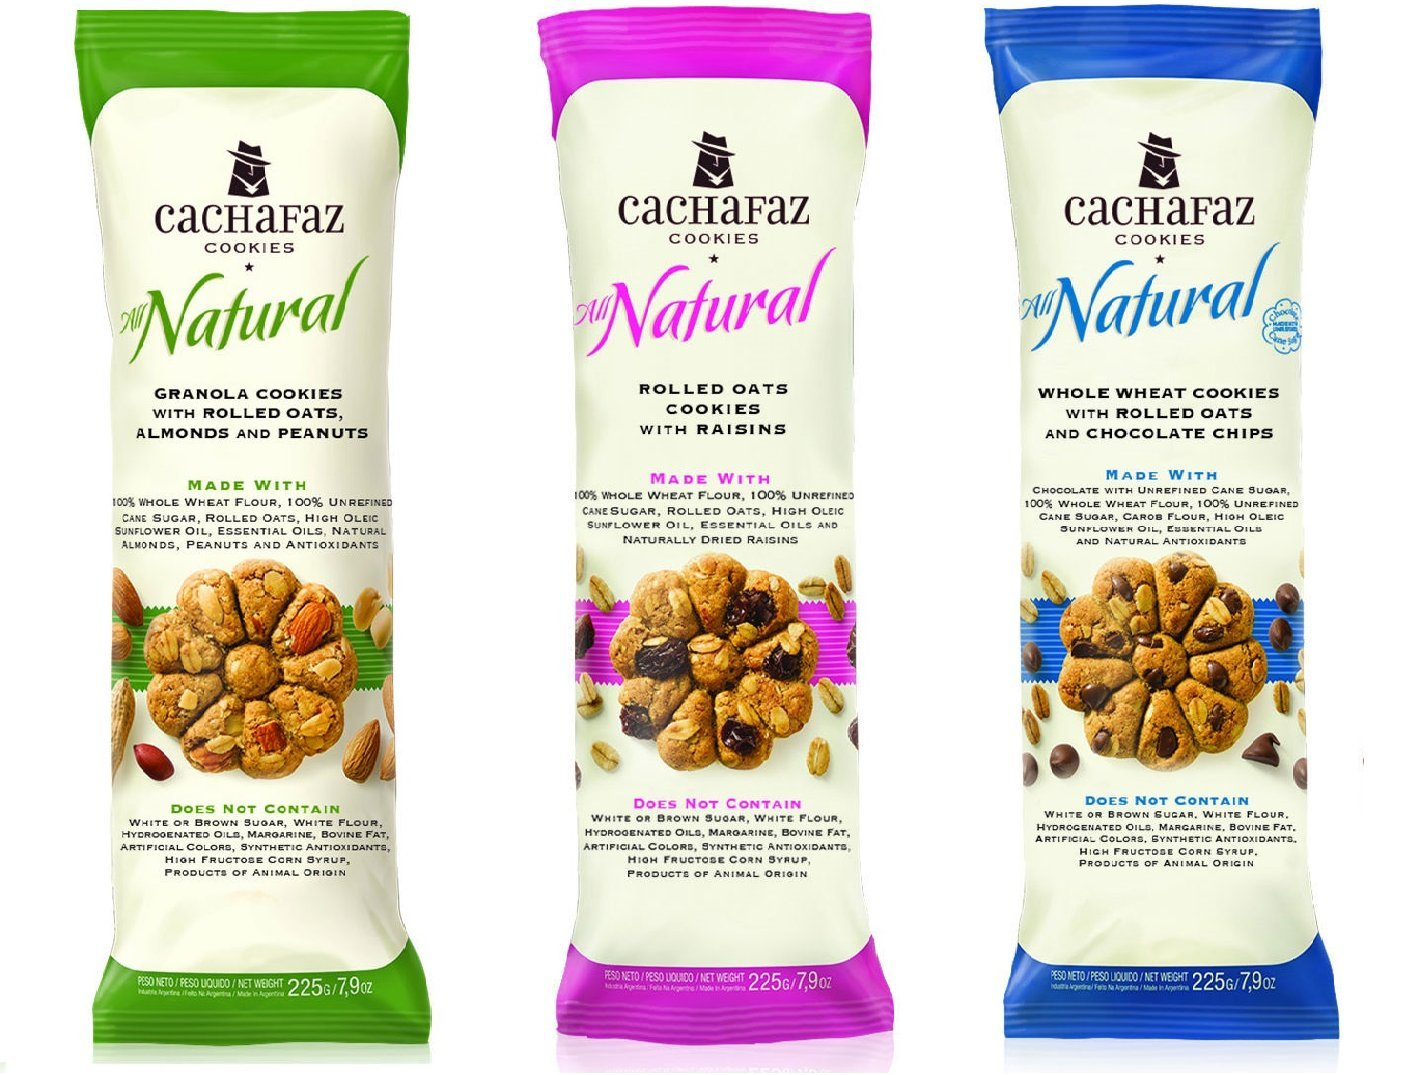 Cachafaz All Natural Whole Wheat Cookies Pack of 3 Best Selling Flavors (Granola-Raisins and Chocolate Chips flavors ) 45cal per cookie/No White Flour/No Margarine/No Bovine Fat/NoHFCS